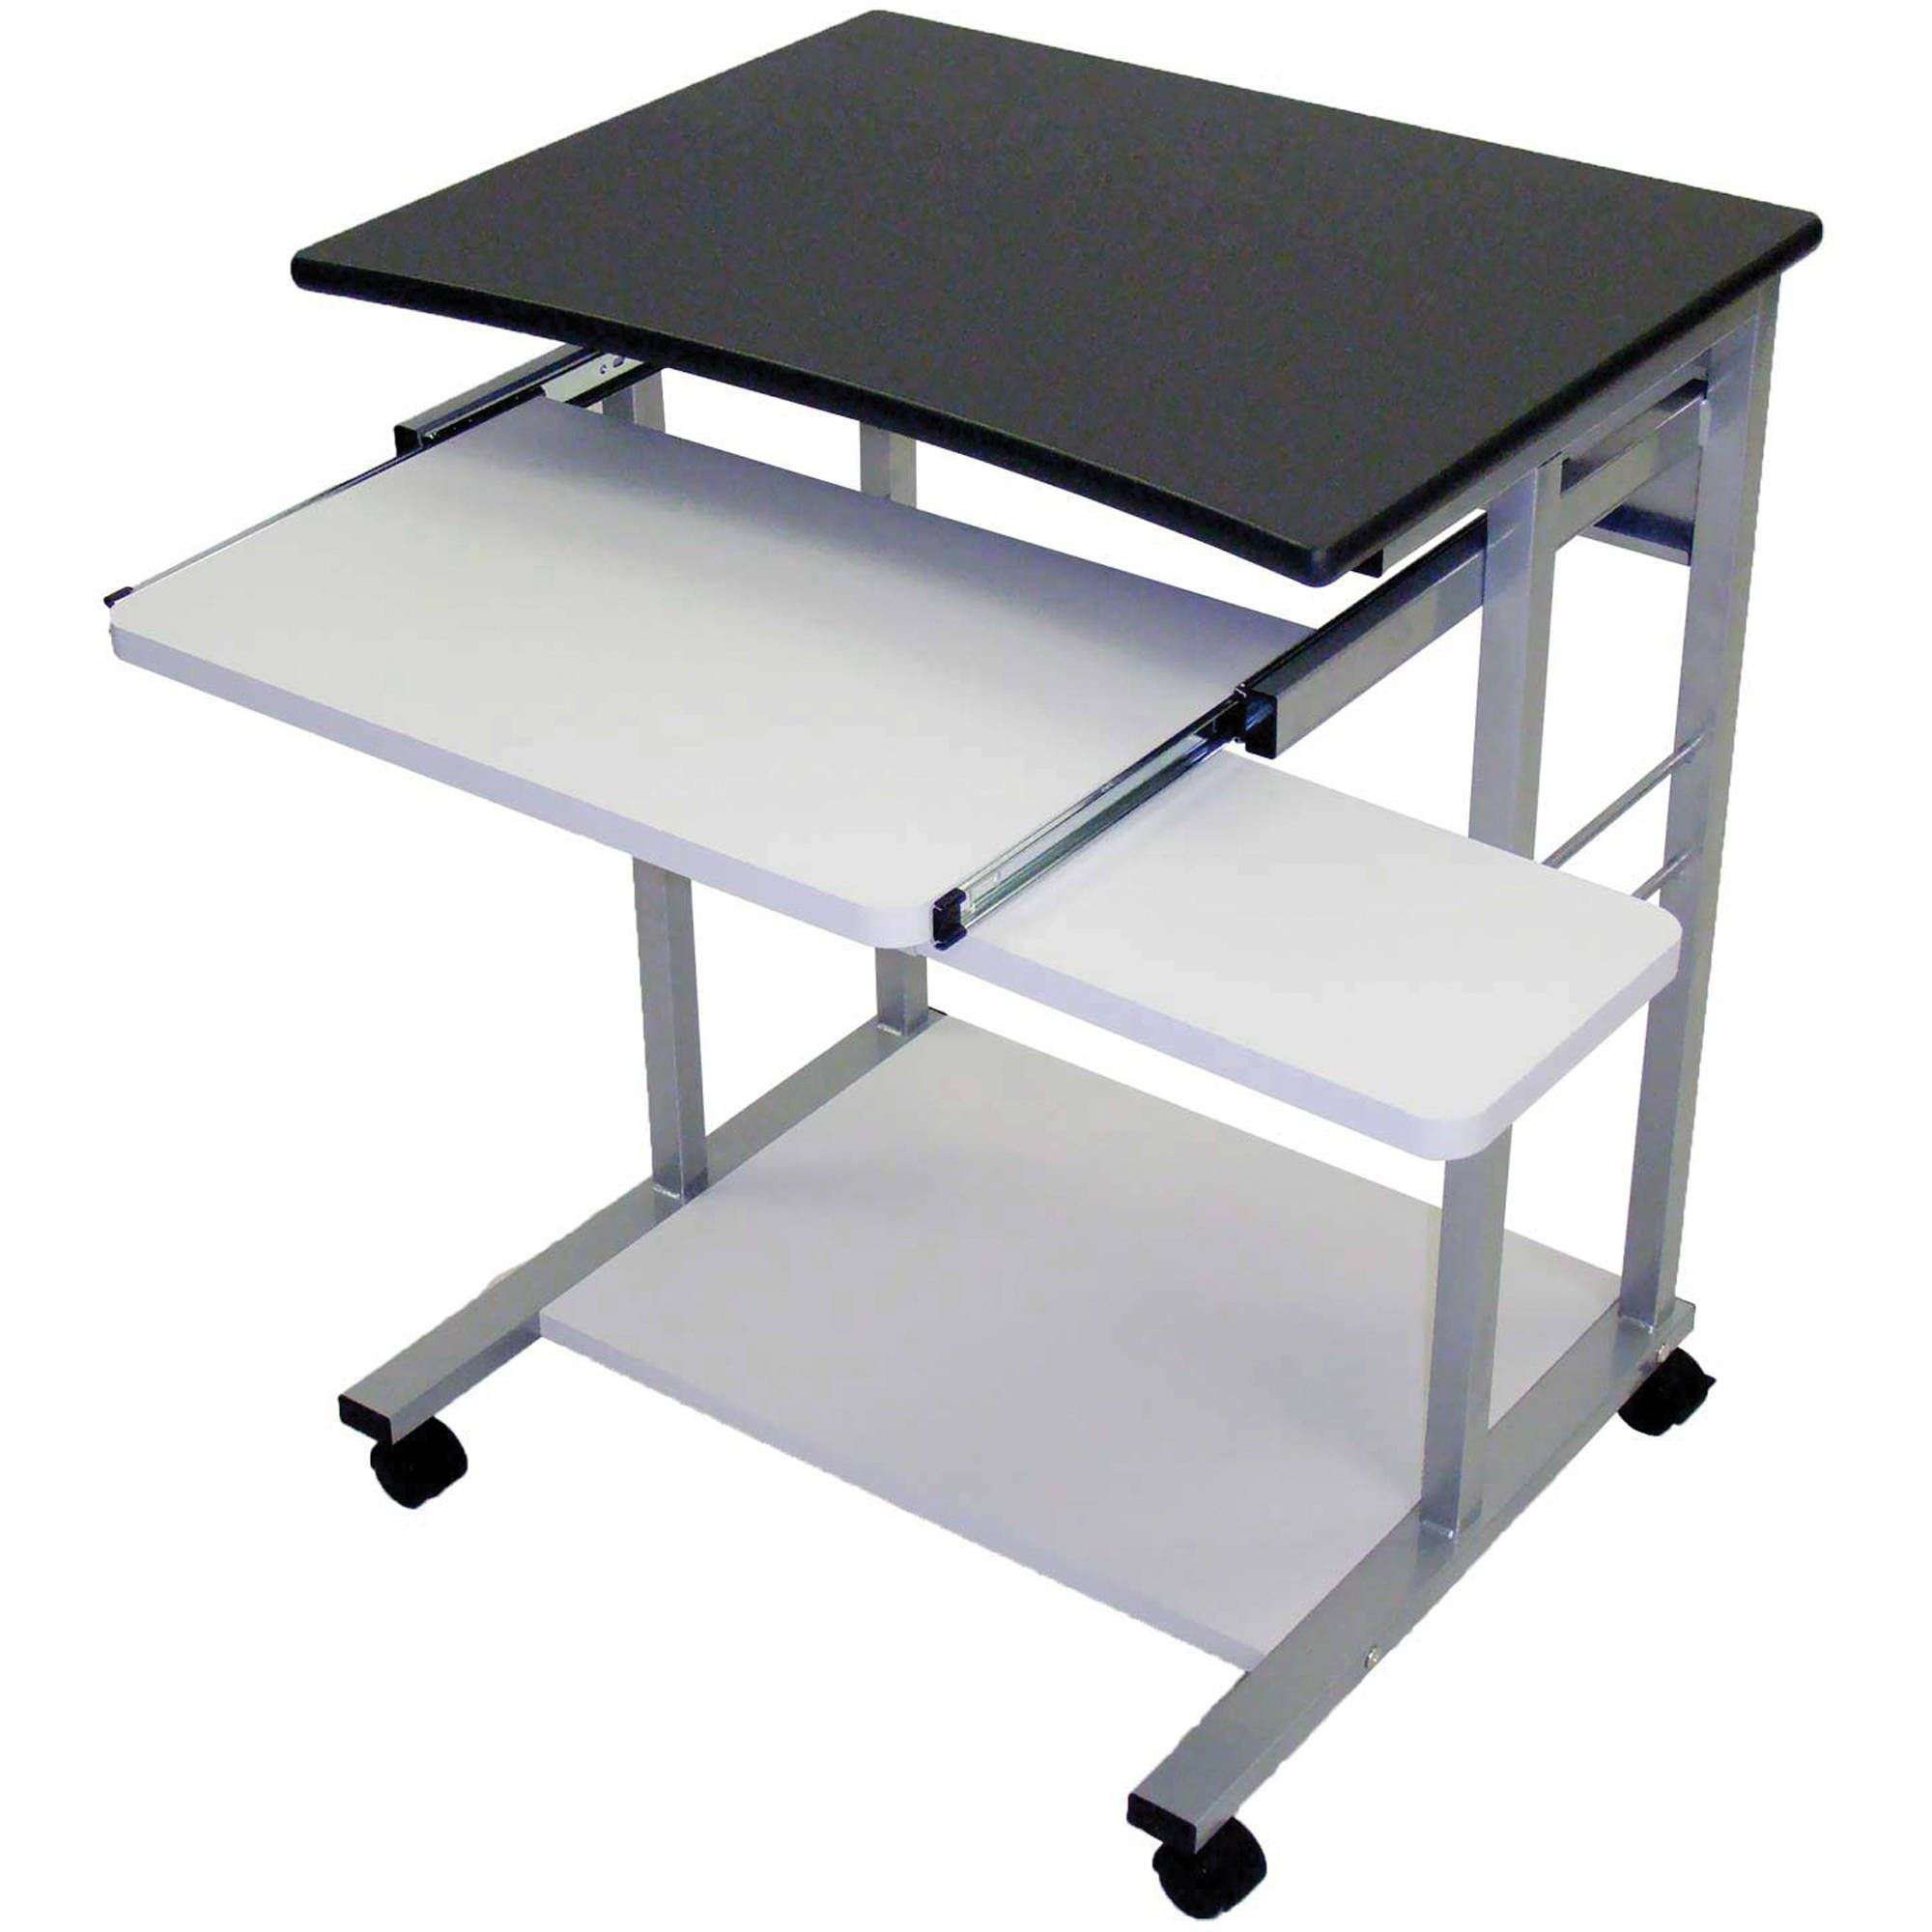 Offex Mobile Computer Desk Workstation With Pullout Keyboard Tray Charcoal